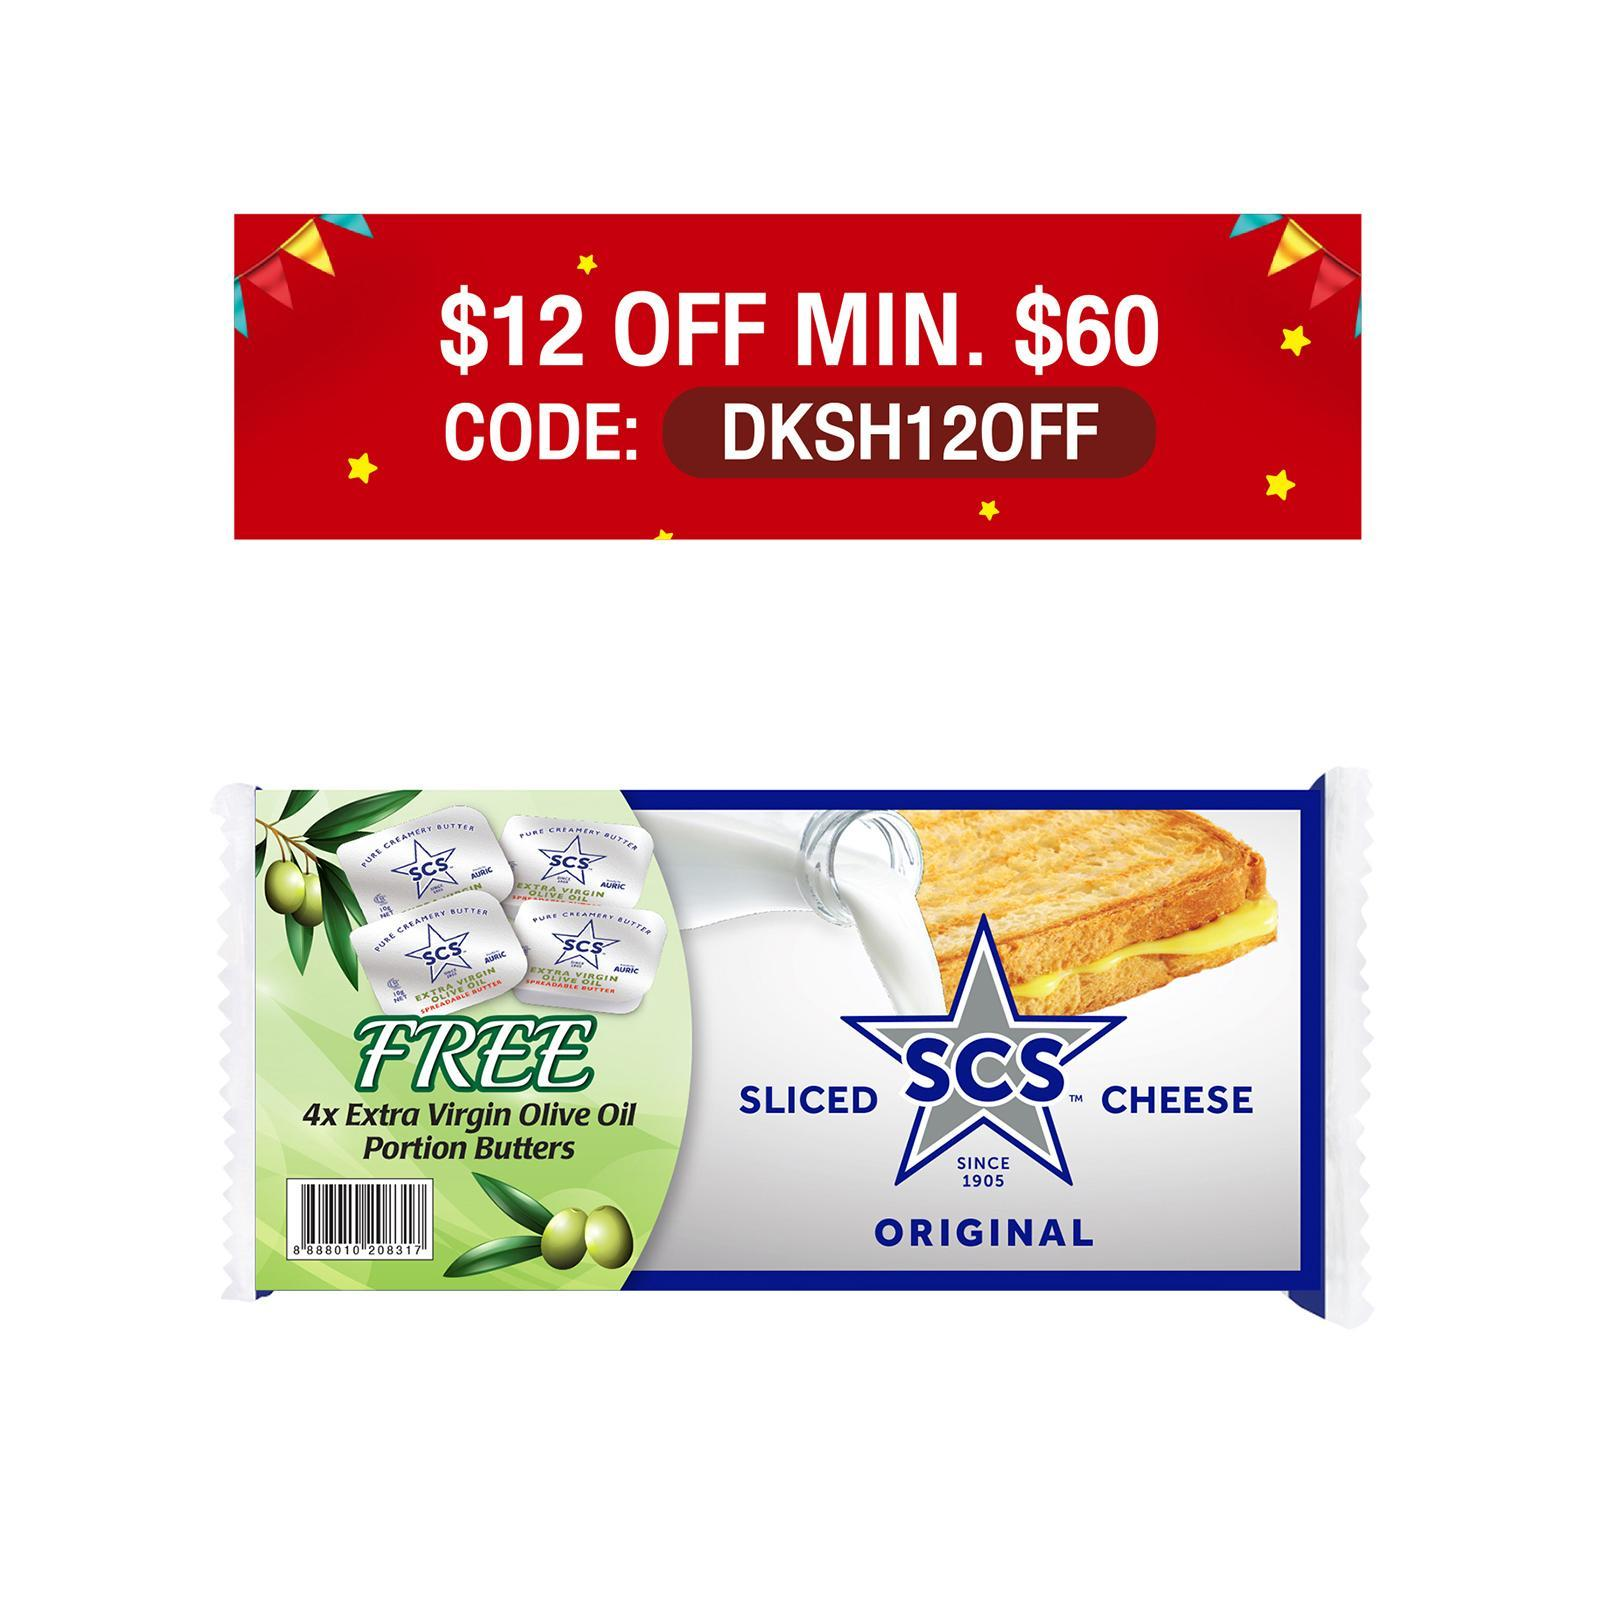 SCS Sliced Cheese Original With Free 4 x Extra Virgin Olive Oil Portion Butters